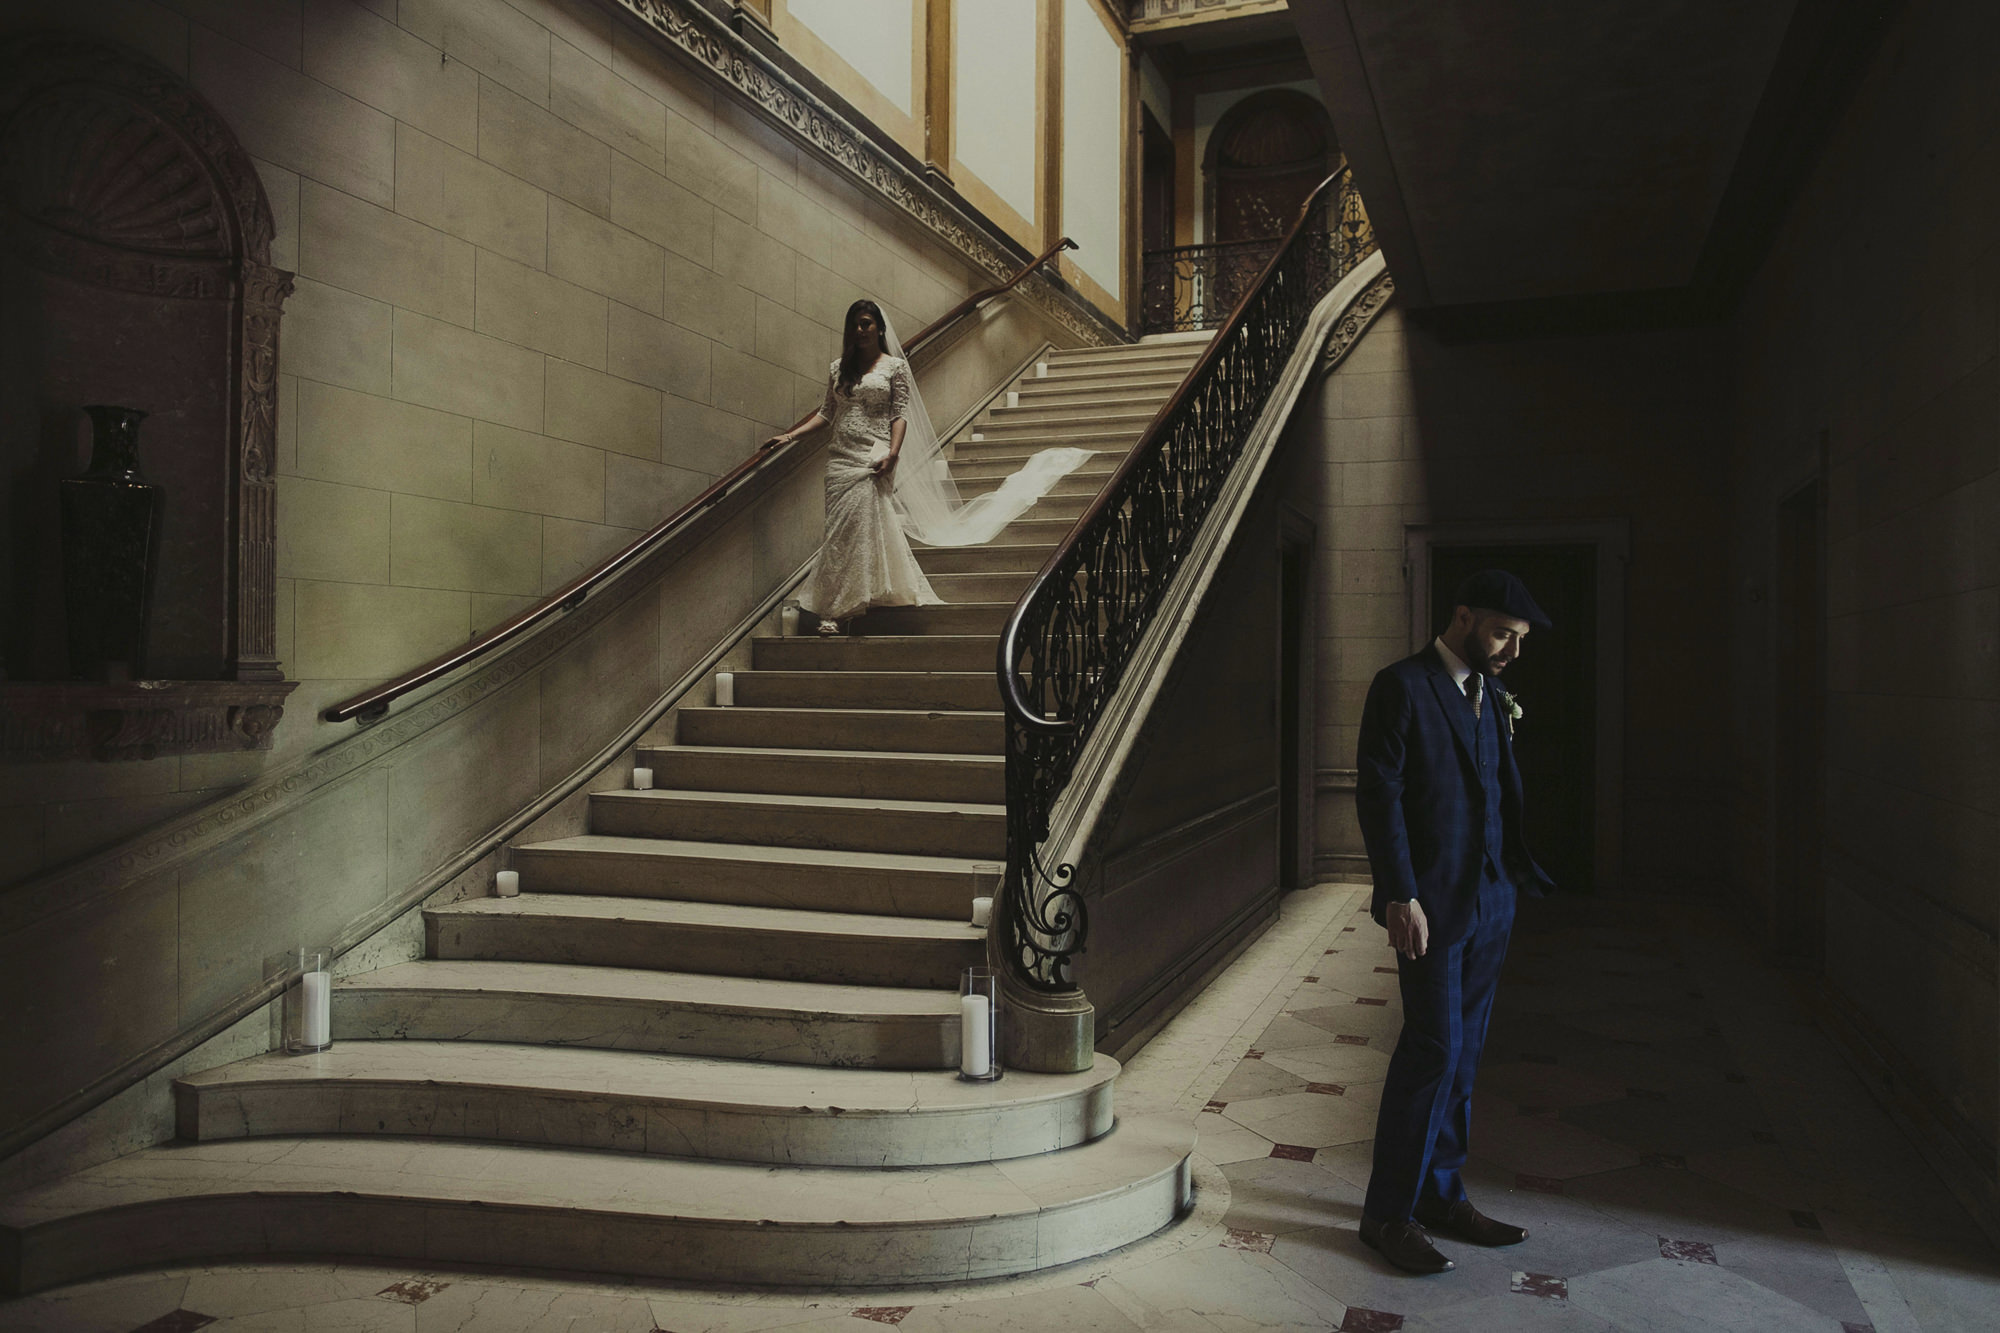 Bride descending stairs to First Look with groom, by Dan O'Day